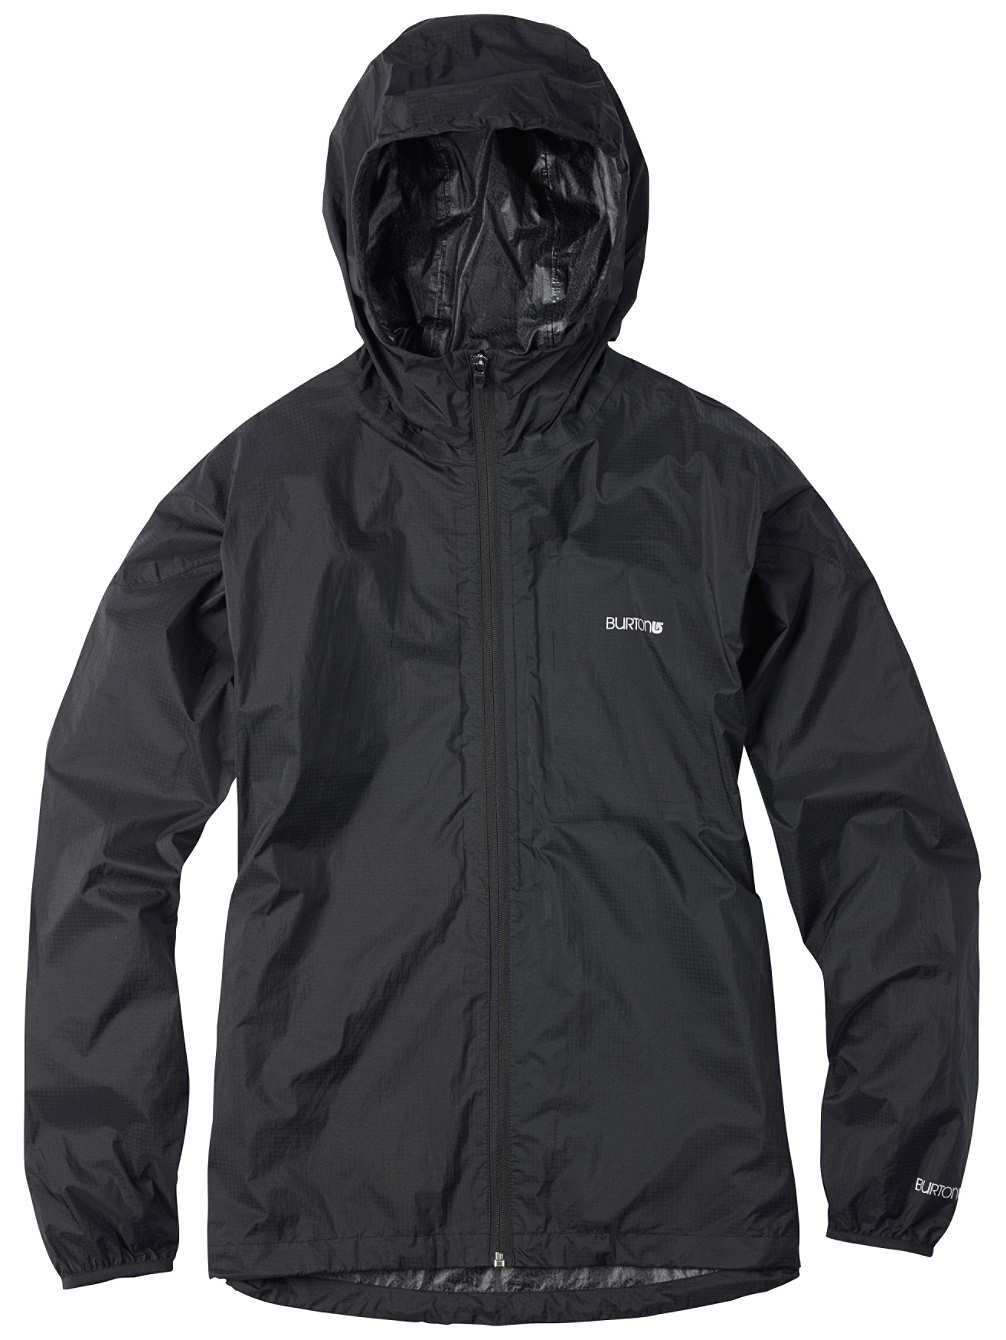 Burton Meadow Jacket<br><br>Ultra-light wind and water protection with the luminous touch of a transparent shell fabric.<br>Wind is a game-changer, even when the sun is shining it can chill you to the bone. The women's Burton Meadow Jacket fights the wind and wet weather with featherweight protection and fully taped, waterproof-breathable performance that's perfect for shoulder-season adventuring. For a look that's unlike anything in your closet, the DRYRIDE Durashell™ 2.5-layer shell fabric…